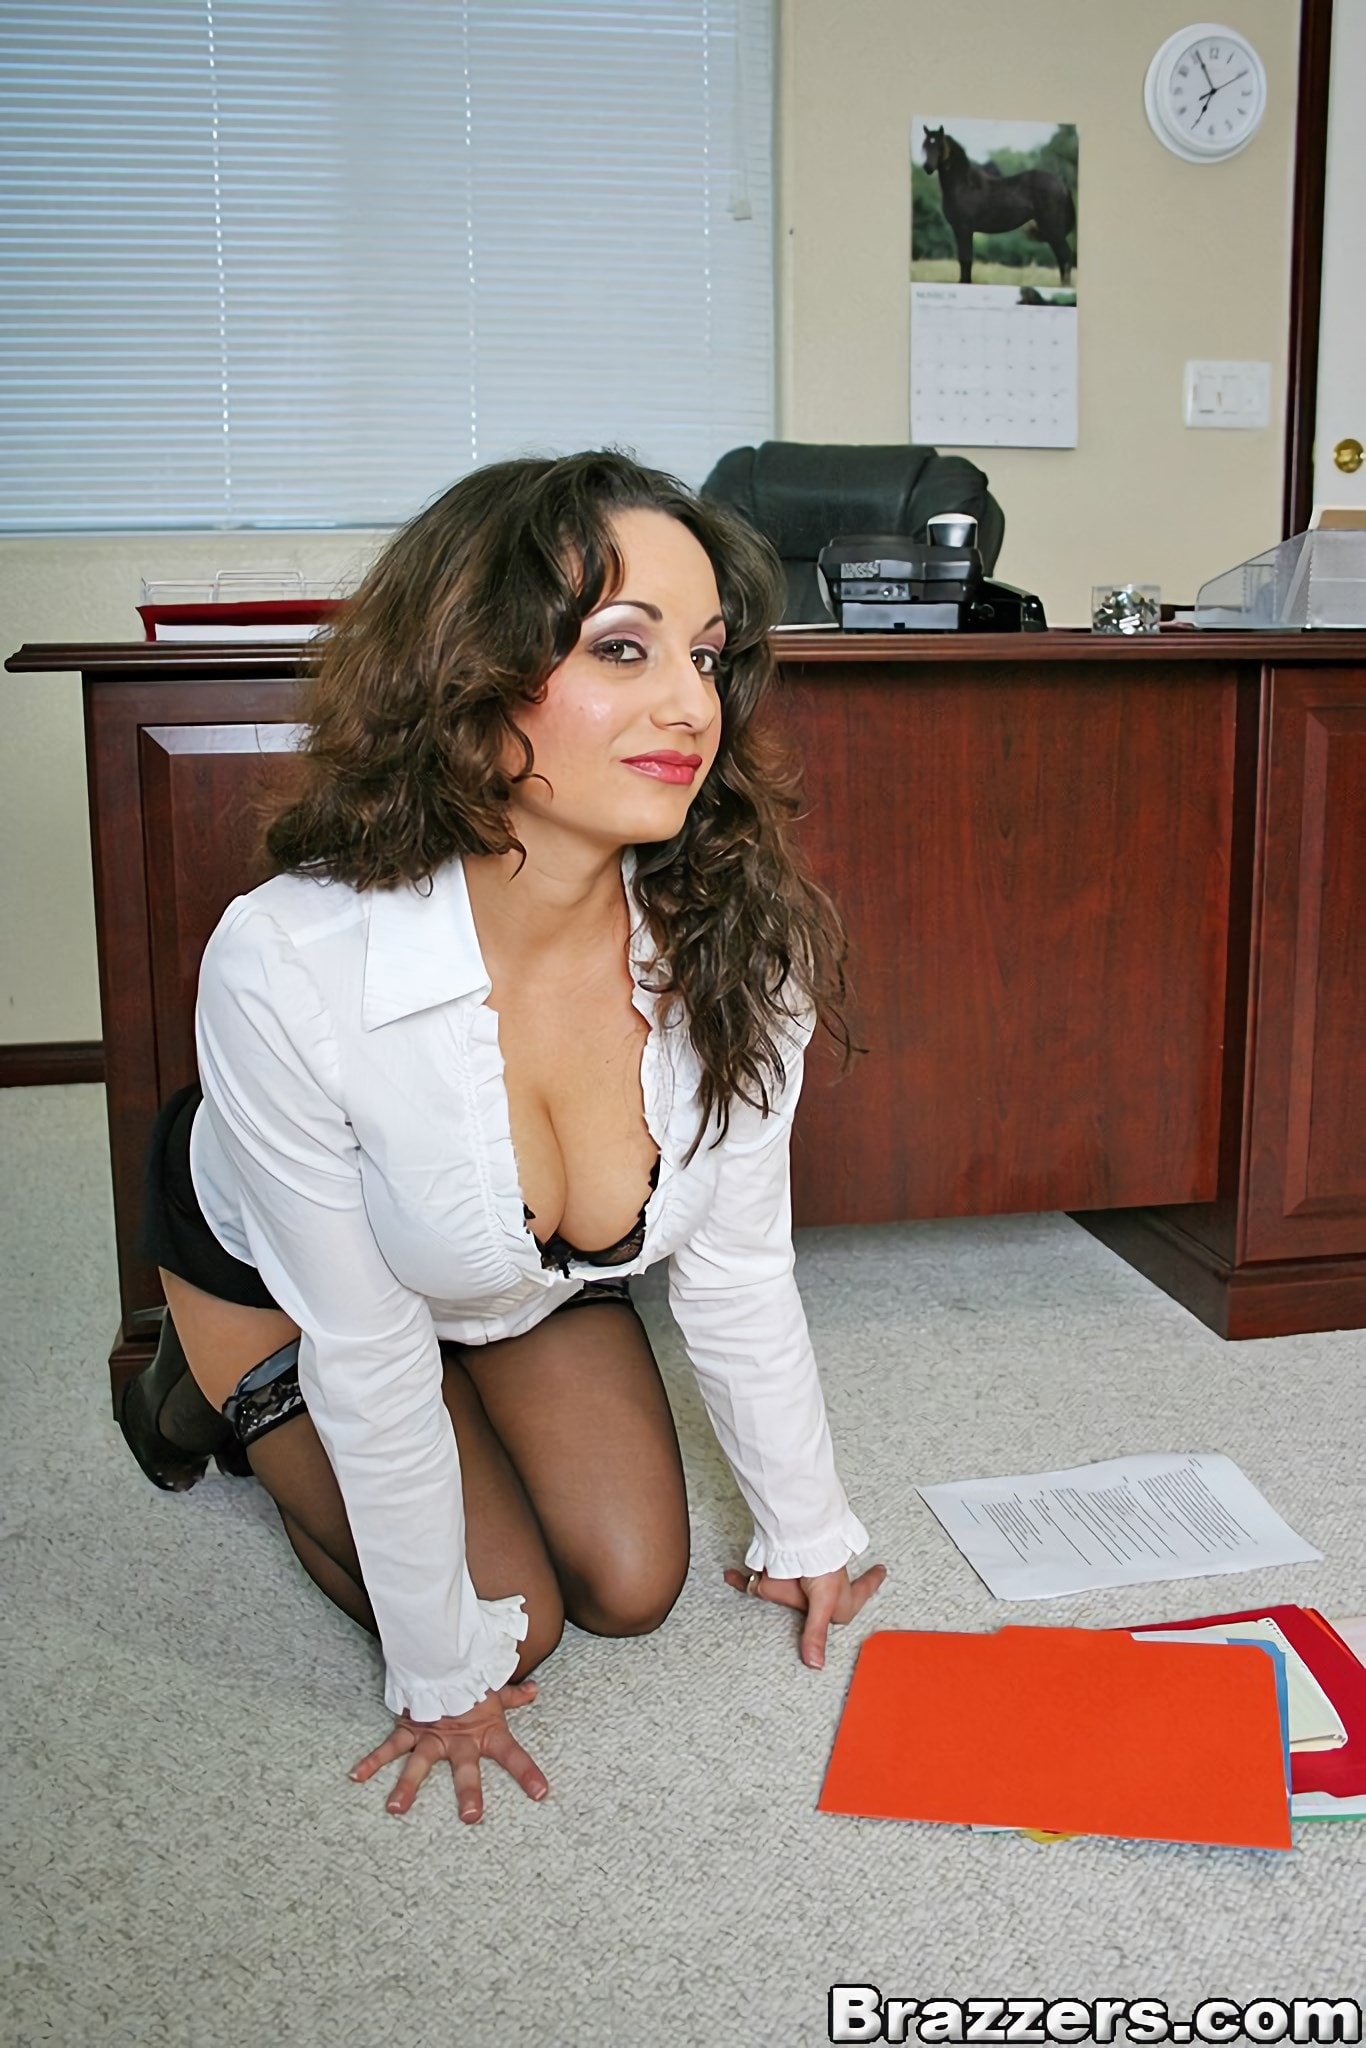 Isabella Manelli - Janitorial Duties | Picture (4)